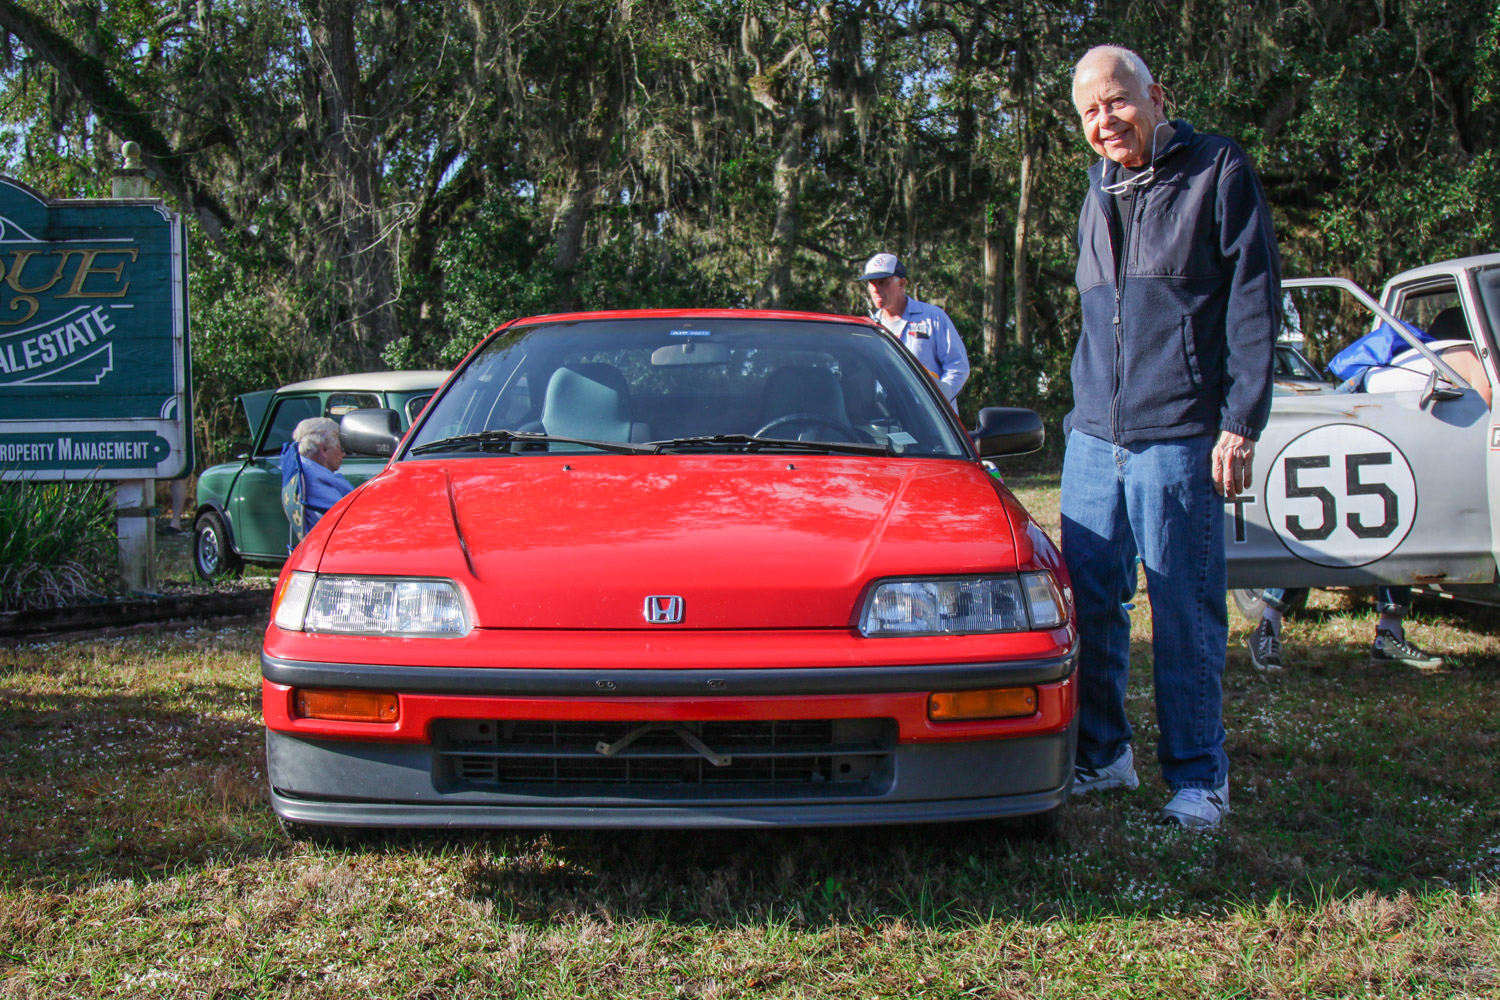 1988 Honda CRX SI front with owner